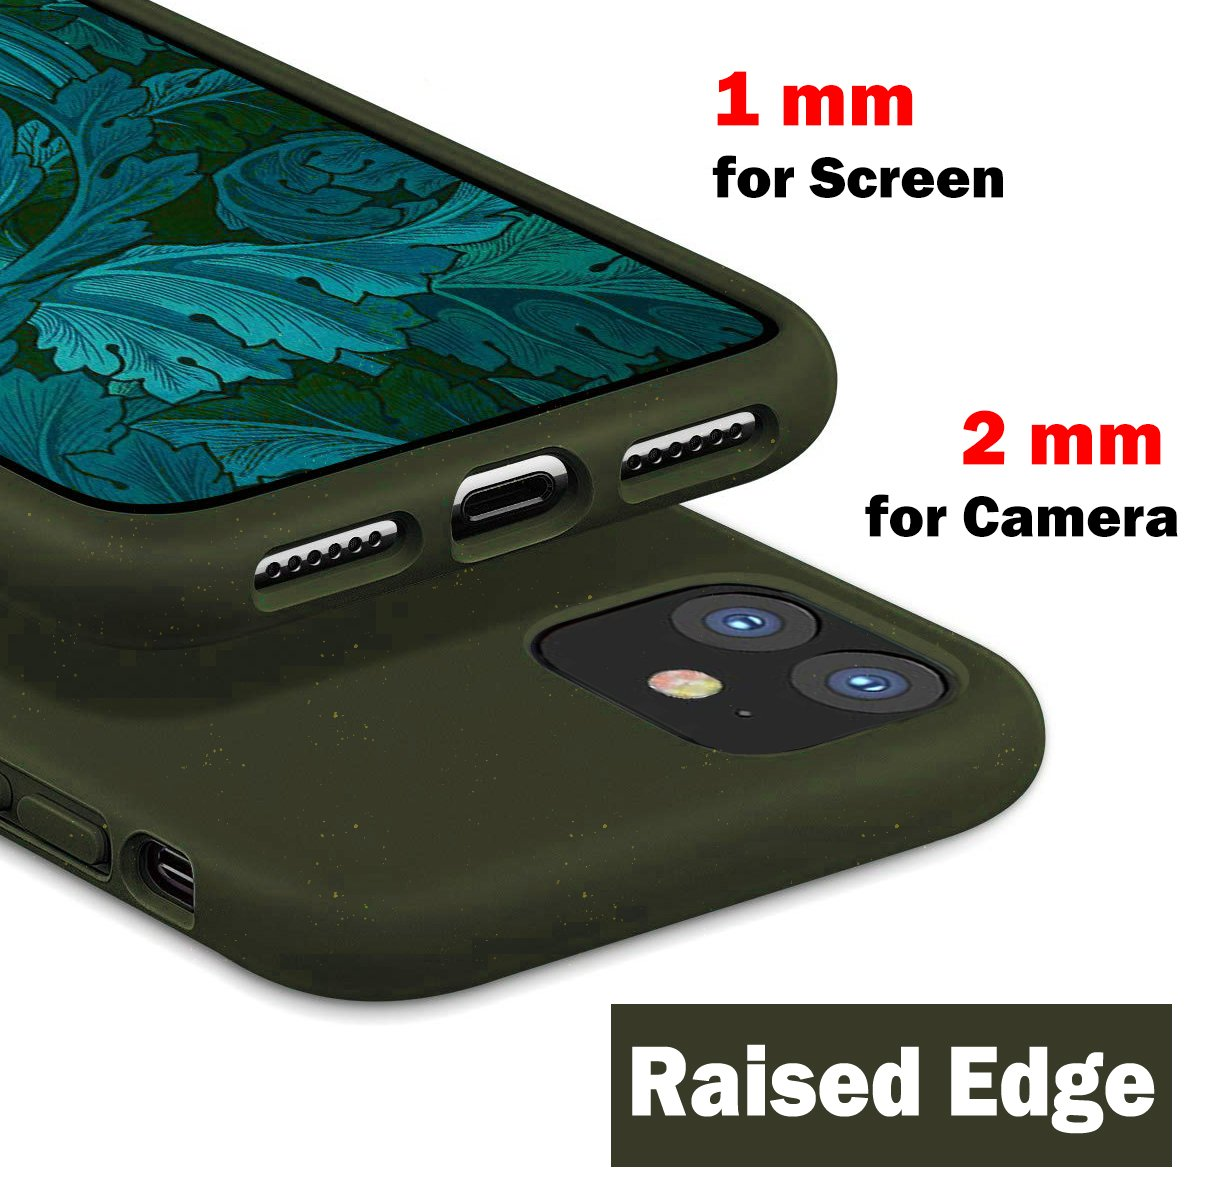 ODOYO iPhone 11 Soft Silicone Case, Shockproof, Slim Fit, Full Silicon Gel Rubber Cover with Raised Edge for Camera and Screen Protection - Compatible with Apple iPhone 11 6.1 Inch 2019 (Green)